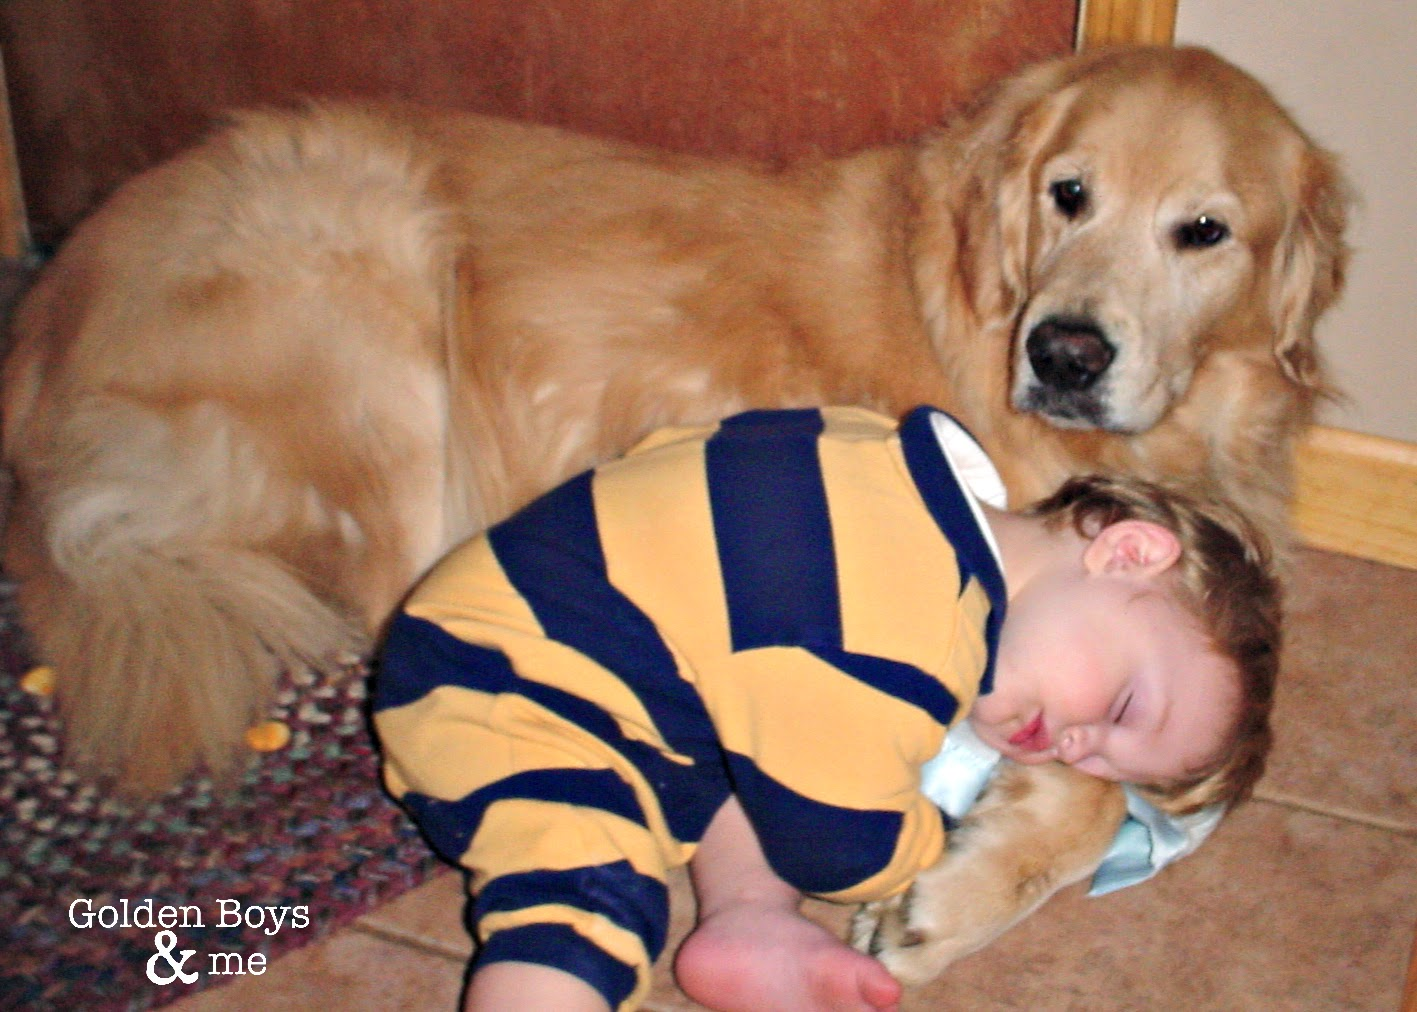 Golden Retriever and toddler sleeping-www.goldenboysandme.com